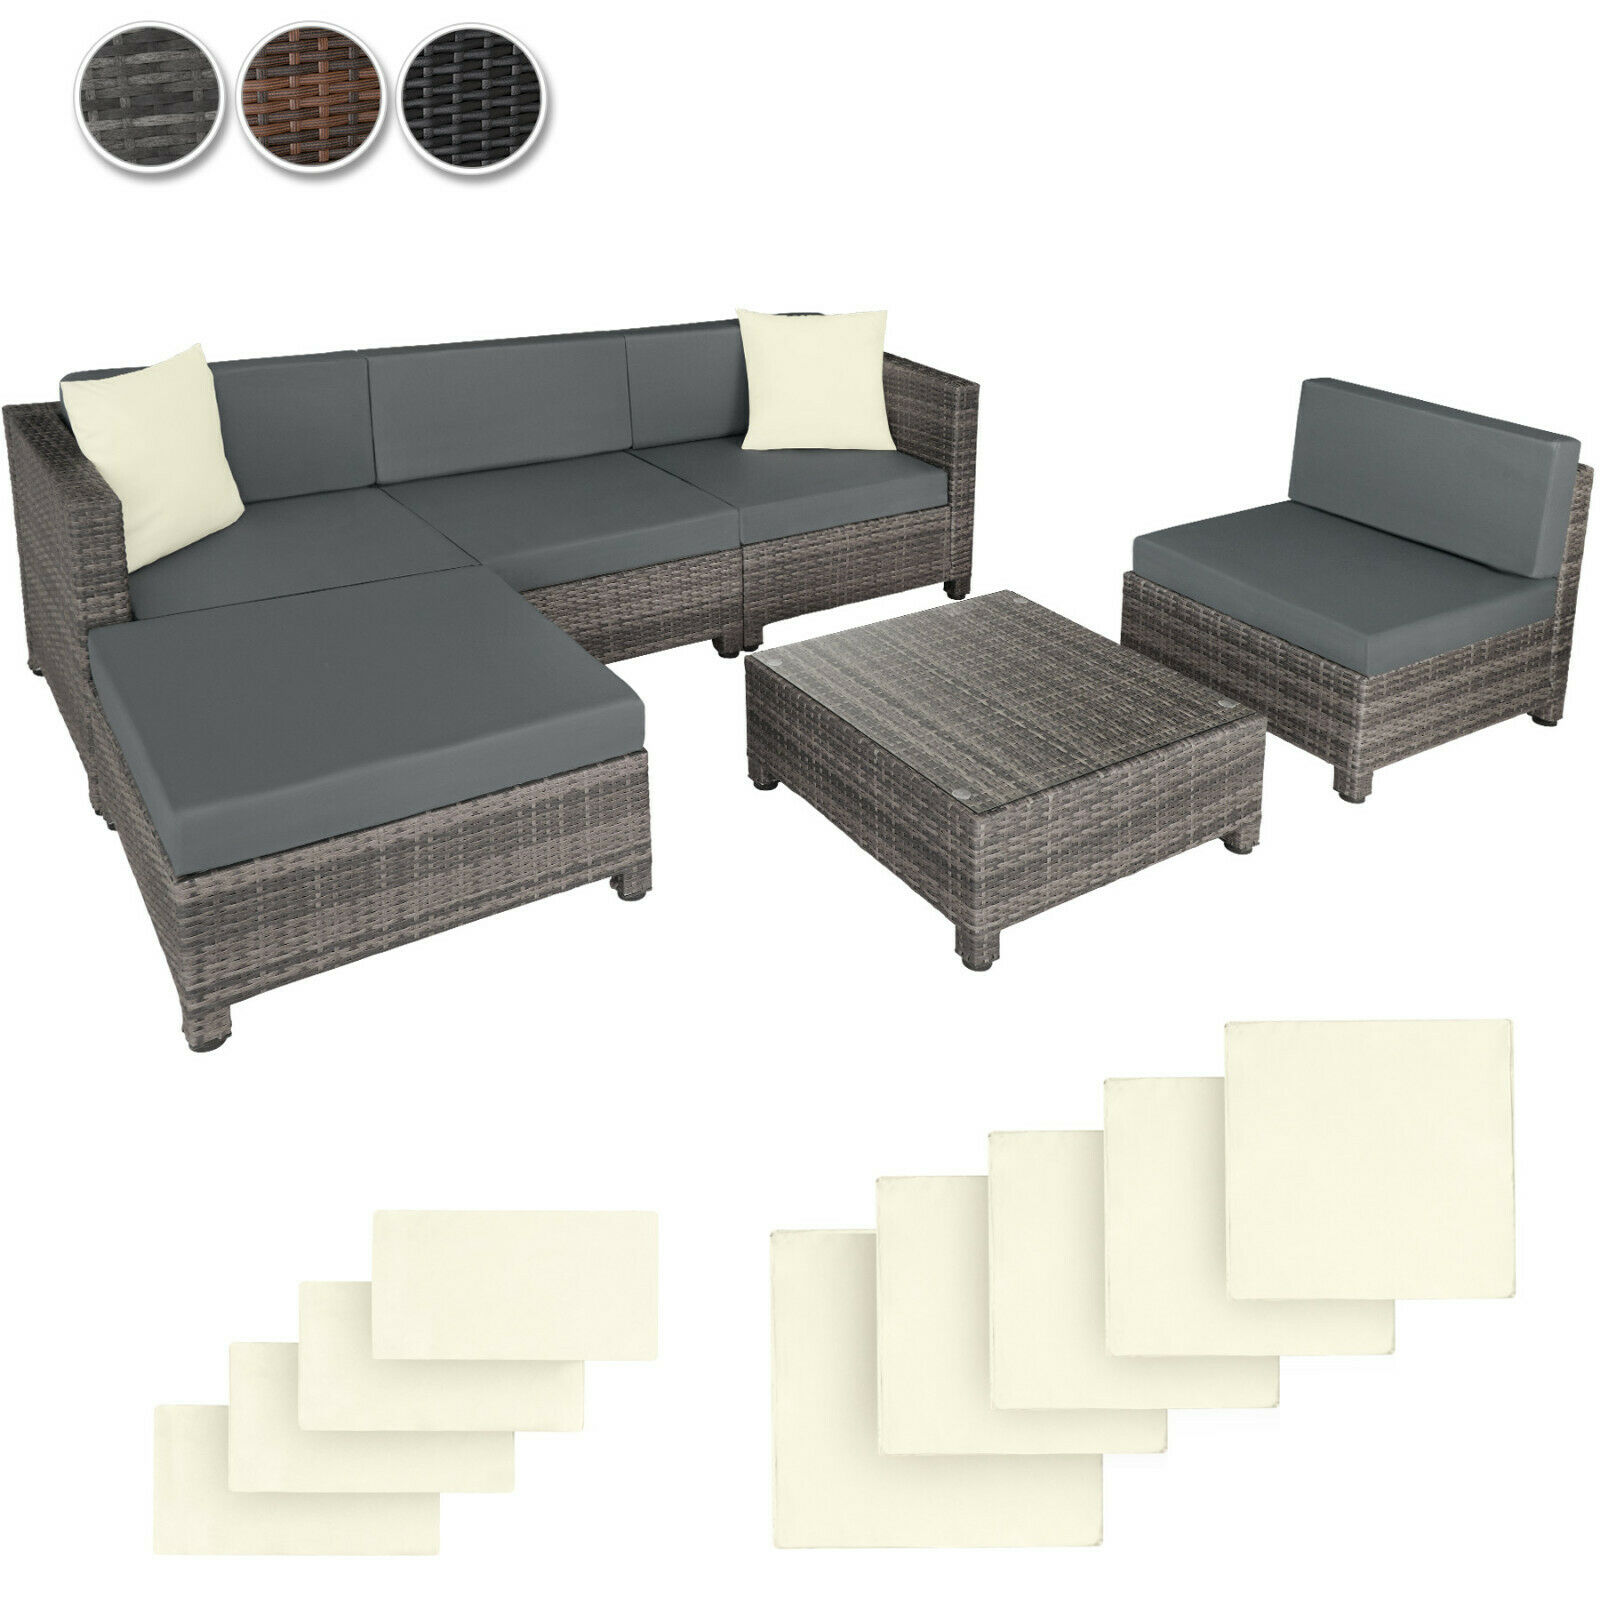 poly rattan aluminium sofa sitzgruppe gartenm bel lounge m bel 2 bez ge eur 302 99 picclick fr. Black Bedroom Furniture Sets. Home Design Ideas